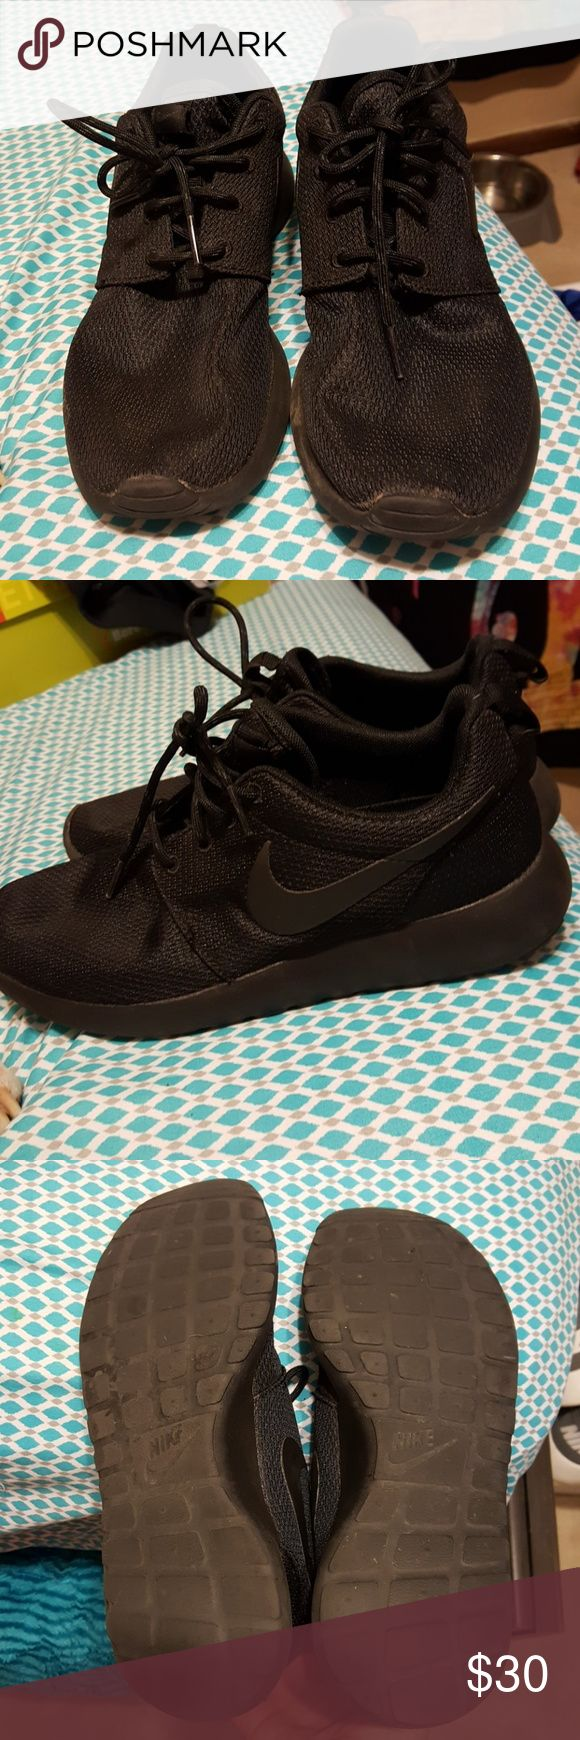 All Black Nike All black Nikes, soze 7.5. Perfect condition, very little dirt from the few times they were worn. Offers welcome Nike Shoes Athletic Shoes